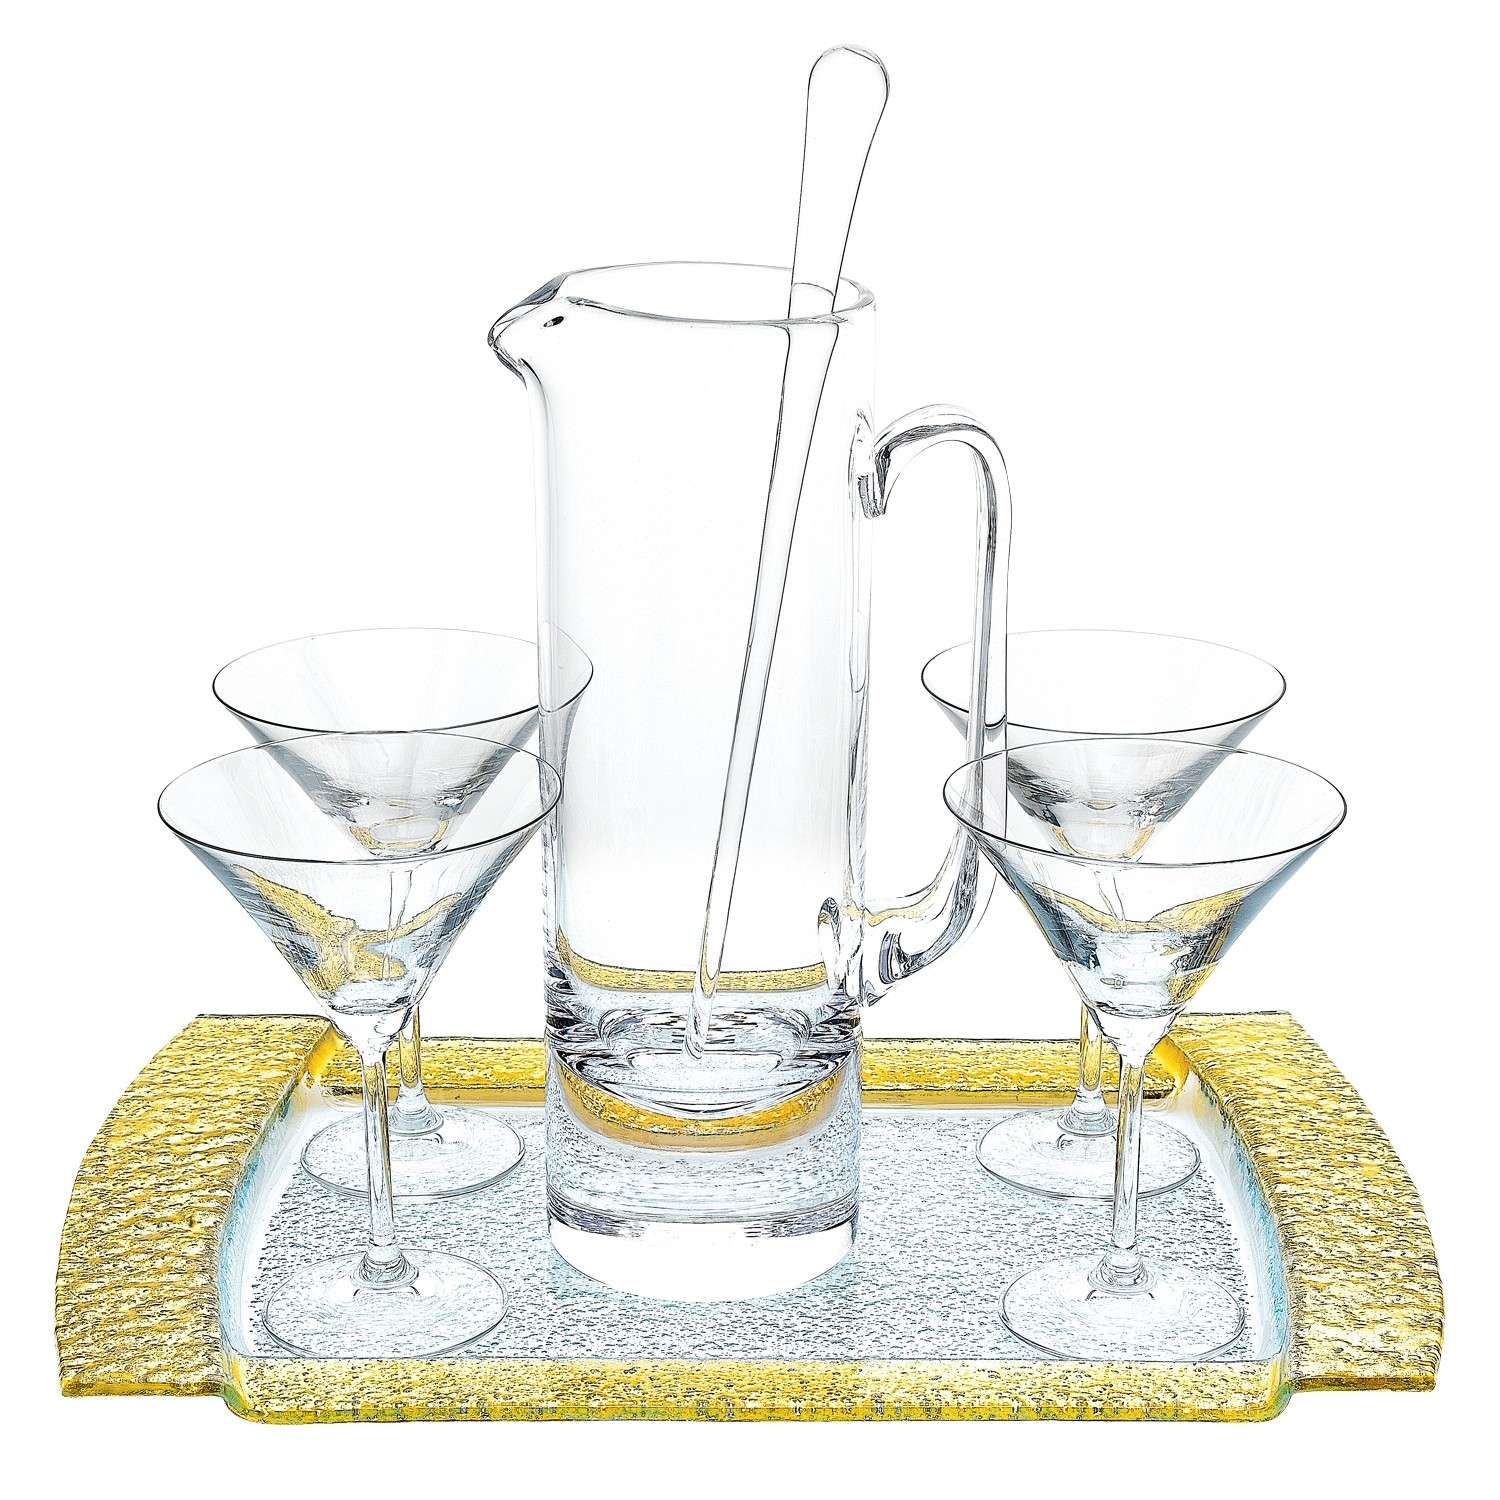 12 Inch 54 Oz European Mouth Blown Lead Free Crystal Martini Pitcher And Stirrer Set Walmart Com Walmart Com